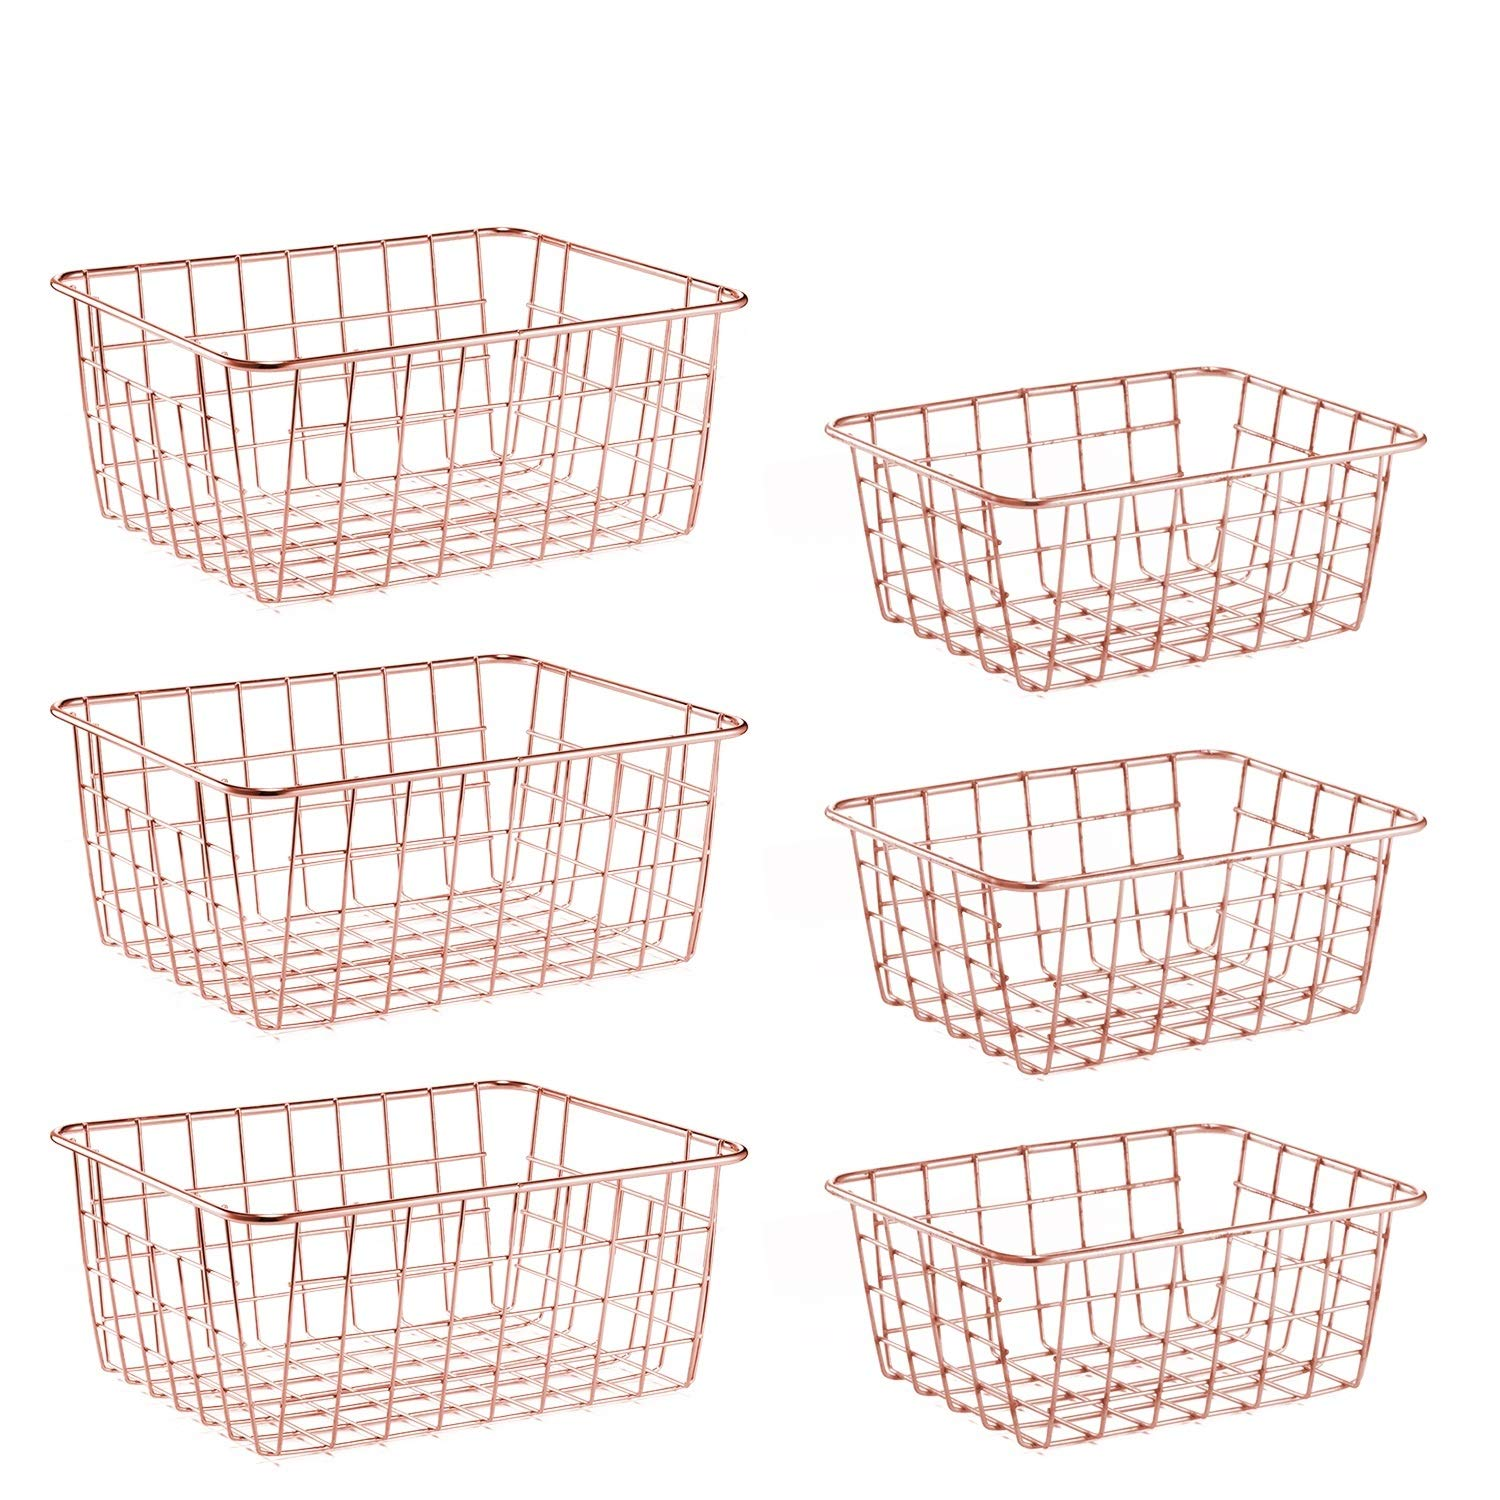 SINARDO Wire Storage Basket Organizer Bin Baskets for Kithen Cabinets Freezer Bedroom Bathroom (6, Rose Gold)